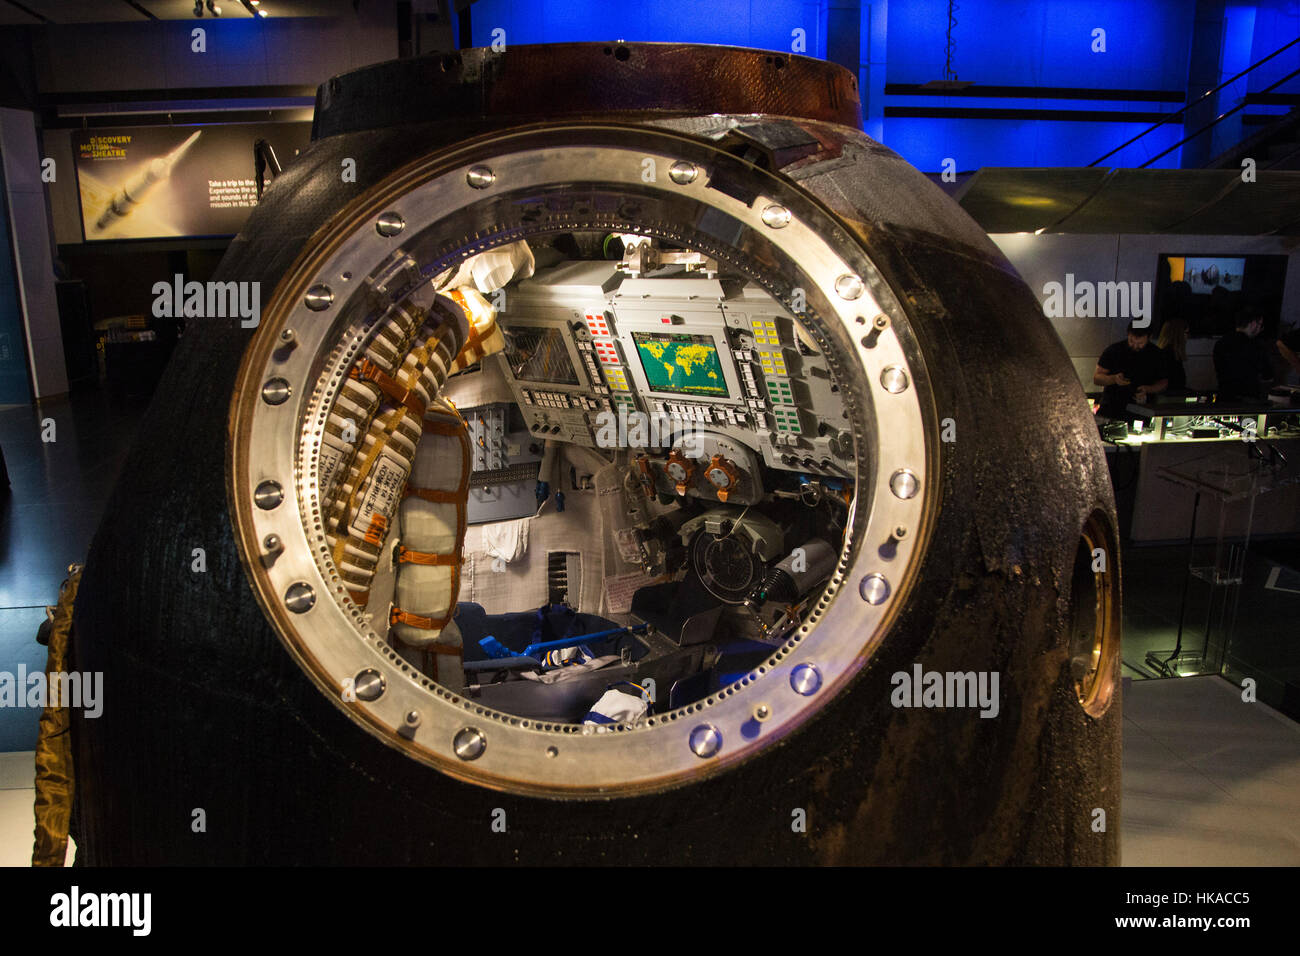 London, UK. 26 January 2017. View inside the spacecraft. The Science Museum unveils the Soyuz TMA-19M descent module, - Stock Image